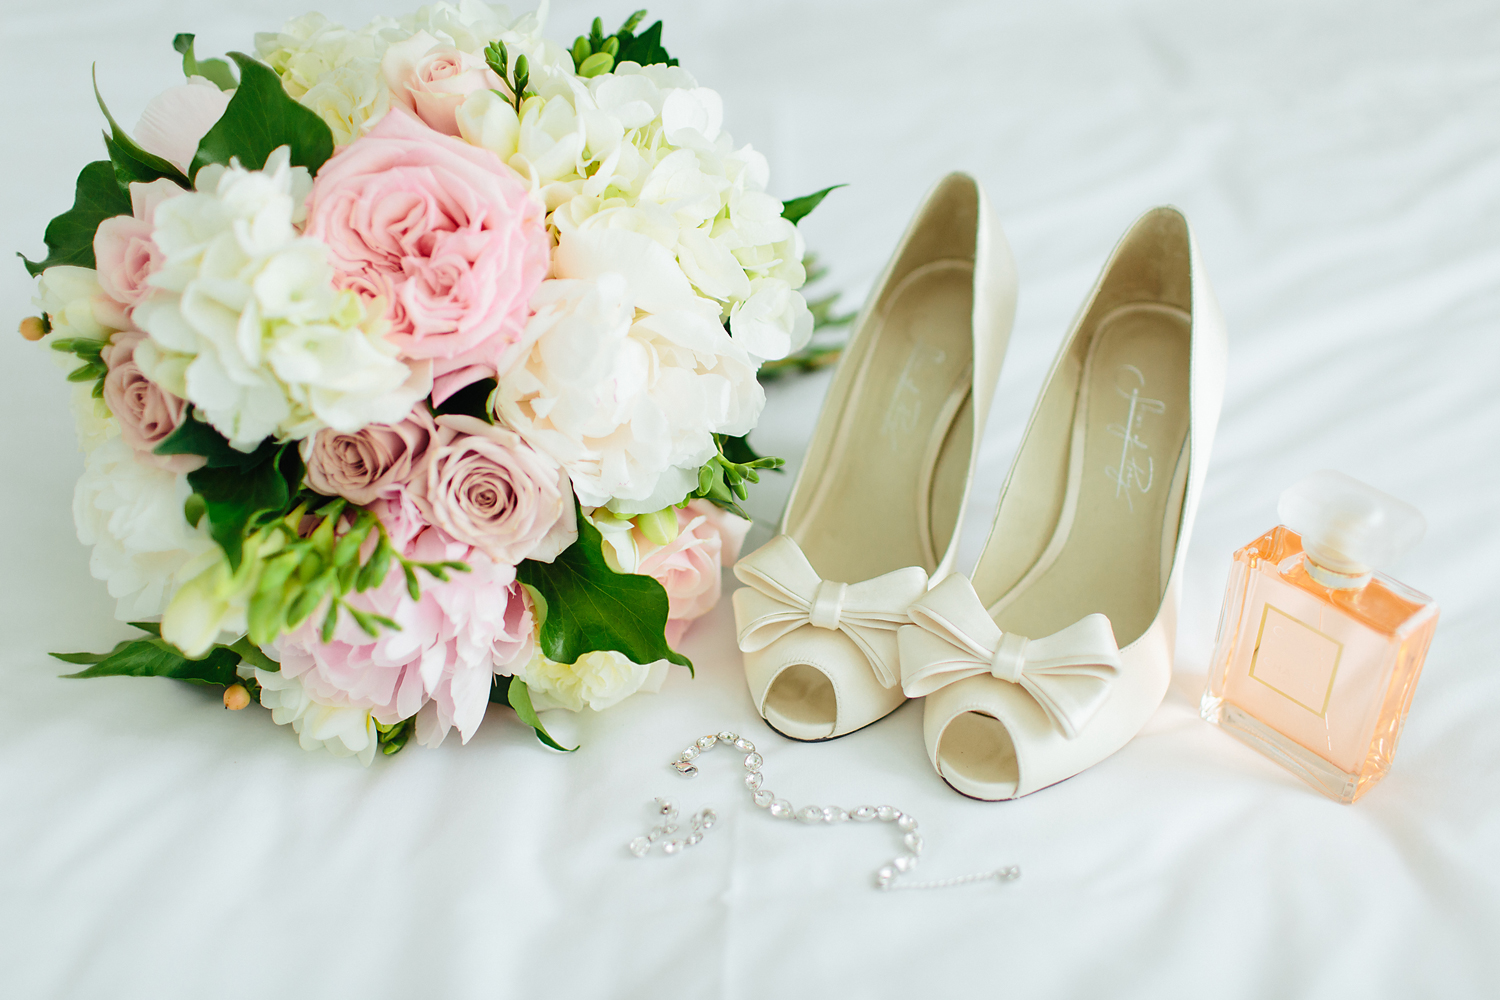 Ecostudio_fellini_wedding_photography005